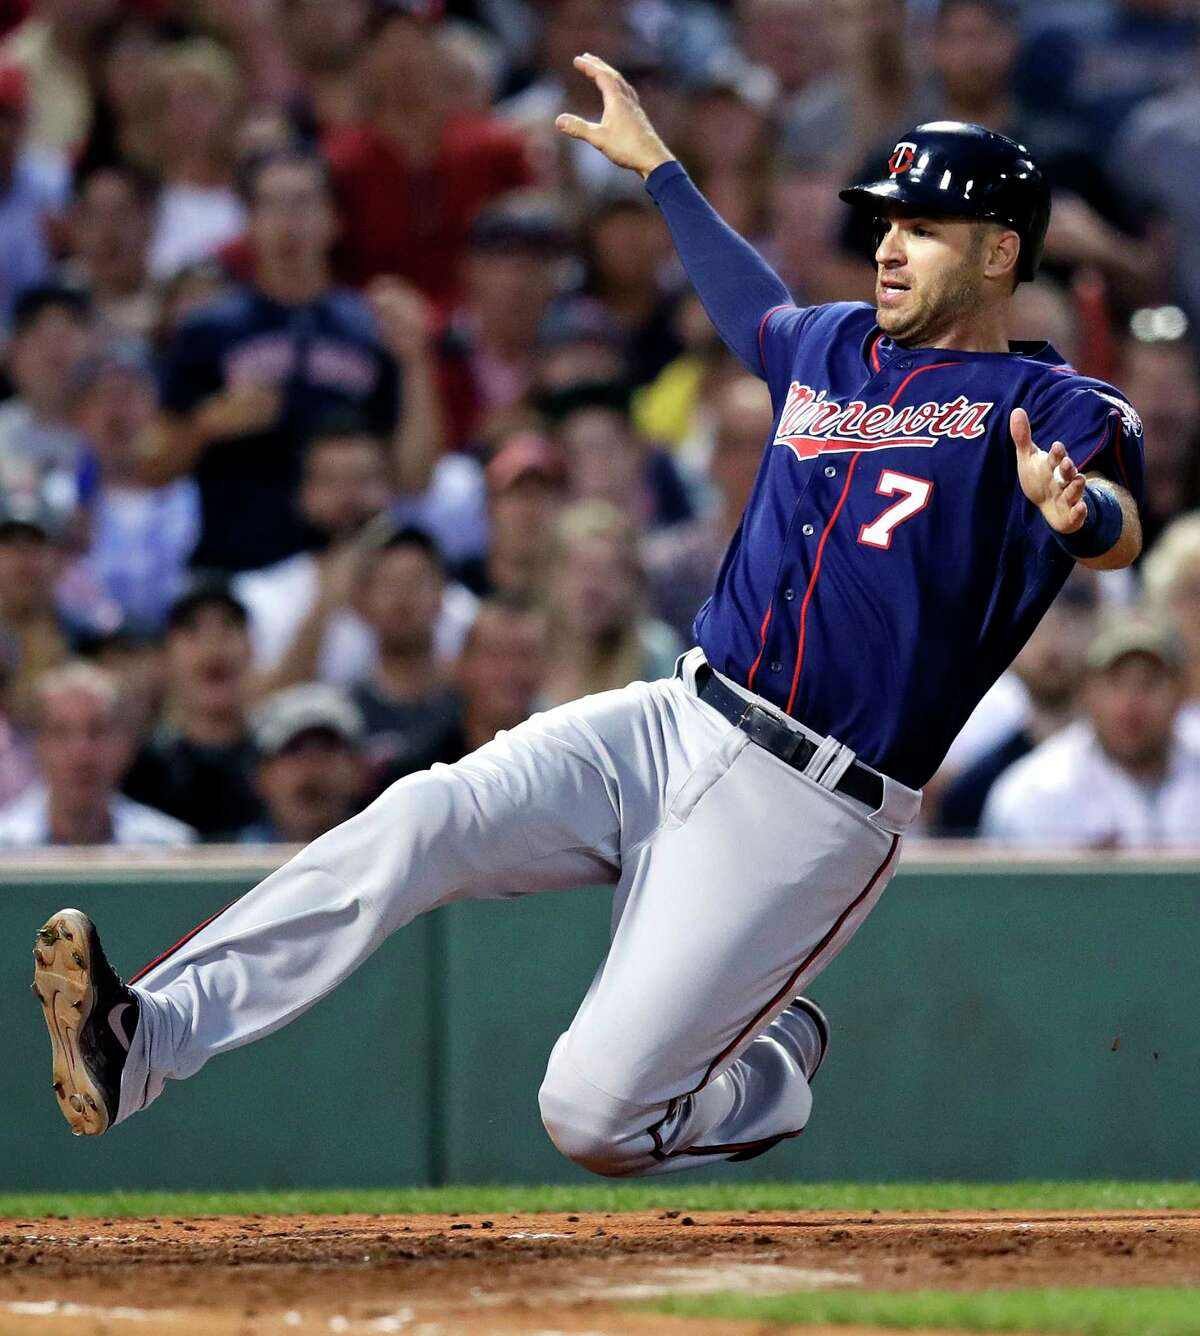 FILE - In this June 29, 2017, file photo, Minnesota Twins' Joe Mauer starts to slide as he scores on a double by Jorge Polanco during the fourth inning of the team's baseball game against the Boston Red Sox, at Fenway Park in Boston. The Minnesota Twins will retire Joe Mauer's No. 7 jersey next season, moving swiftly with the prestigious honor for the six-time All-Star who recently finished a 15-year major league career. The Twins surprised Mauer with the announcement while he was being celebrated at an all-student assembly at his alma mater Cretin-Derham Hall High School on Tuesday, Dec. 18, 2018.